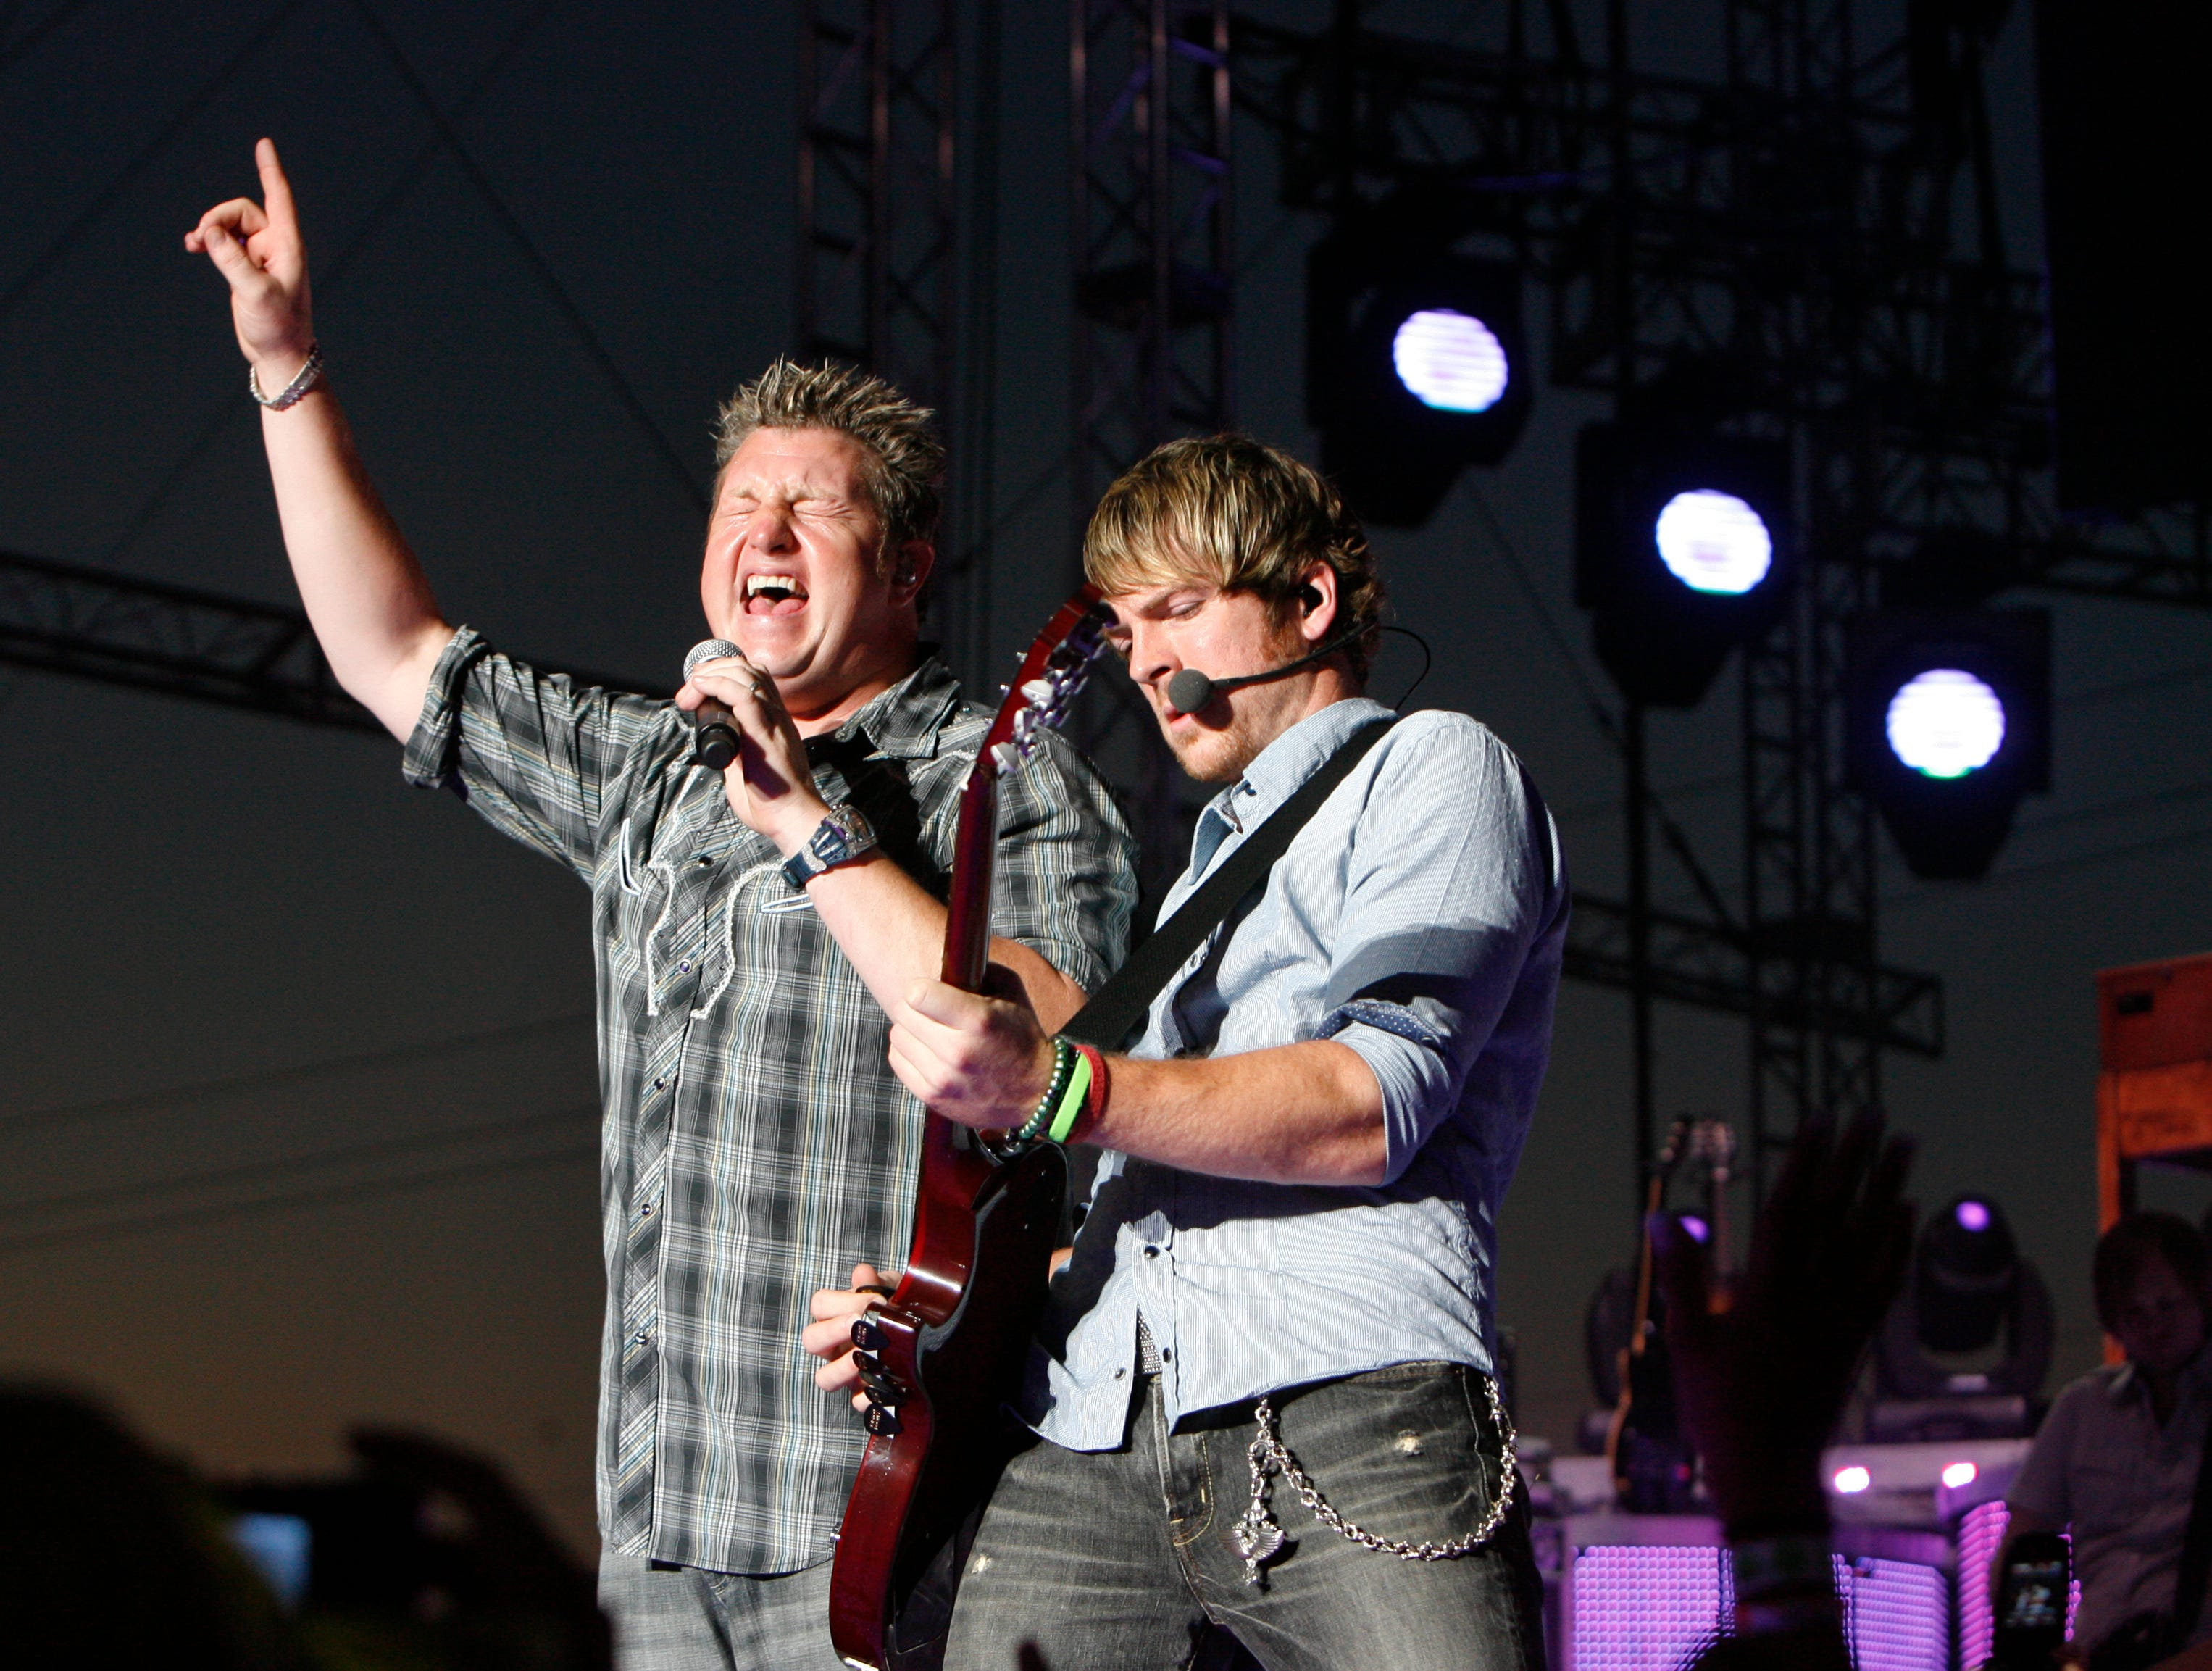 Rascal Flatts vocalist Gary LeVox and guitarist Joe Don Rooney perform together at the Rascal Flatts concert at the Grandstand at the 2007 Indiana State Fair Friday August 10.